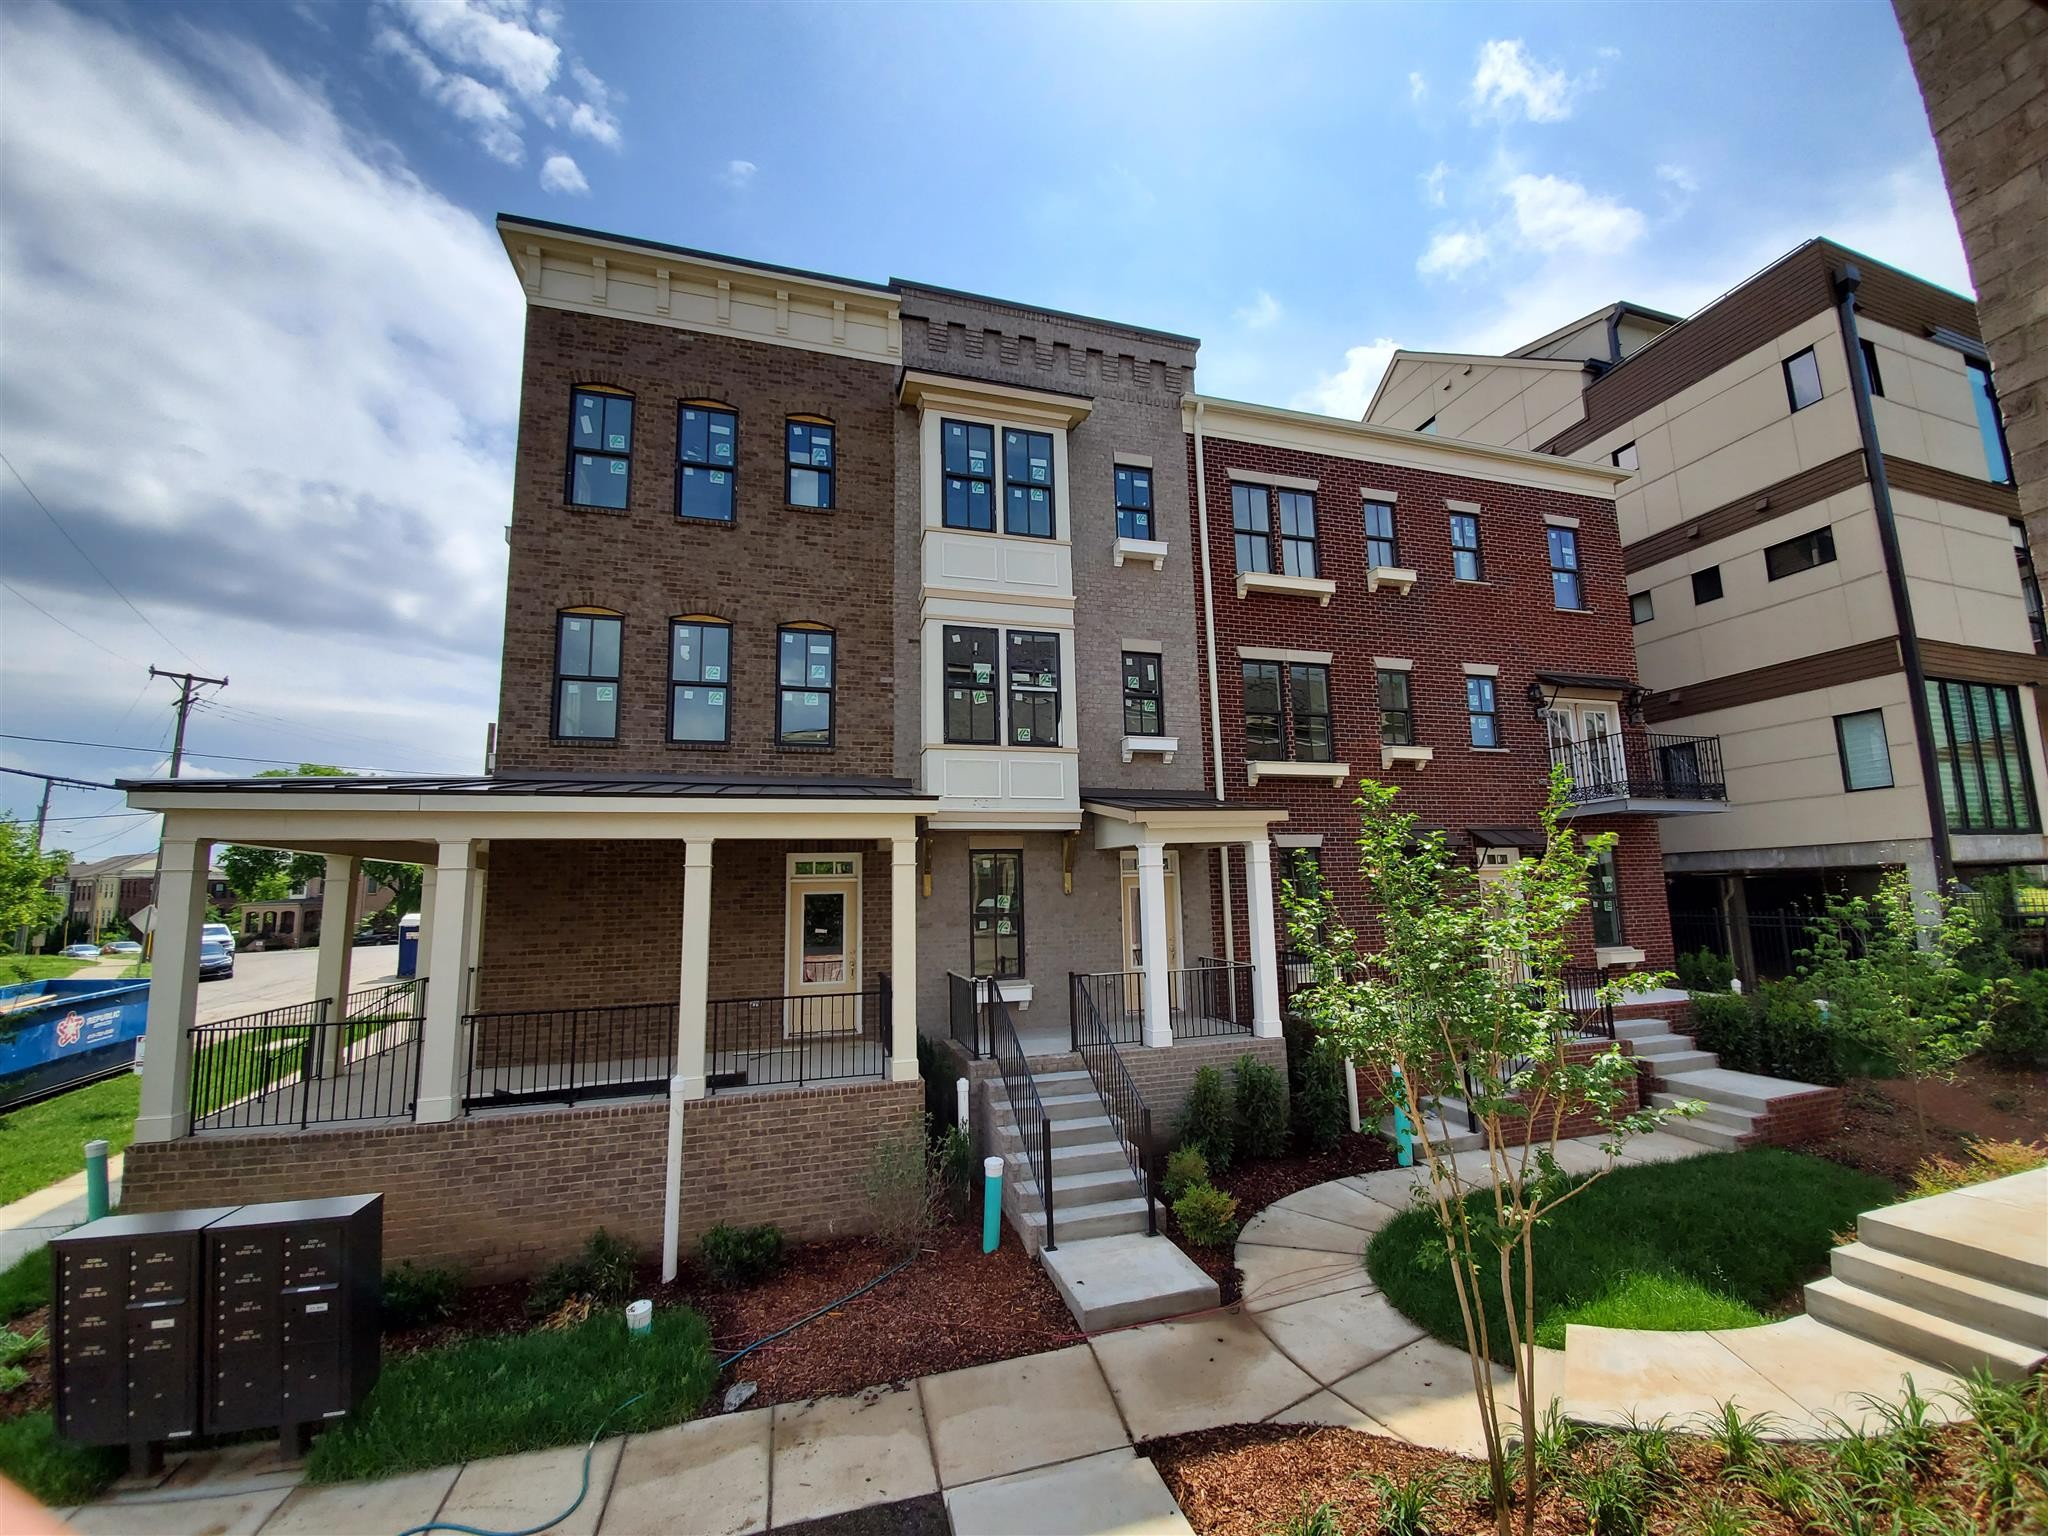 Beautiful 1 Year old townhouse. Relax on the huge wrap around front porch. Former model home with all the bells and whistles. Granite and hardwood throughout. Great location in Acklen Park, close to I-440 and near Centennial Park. Ample room in the tandem 2 car garage